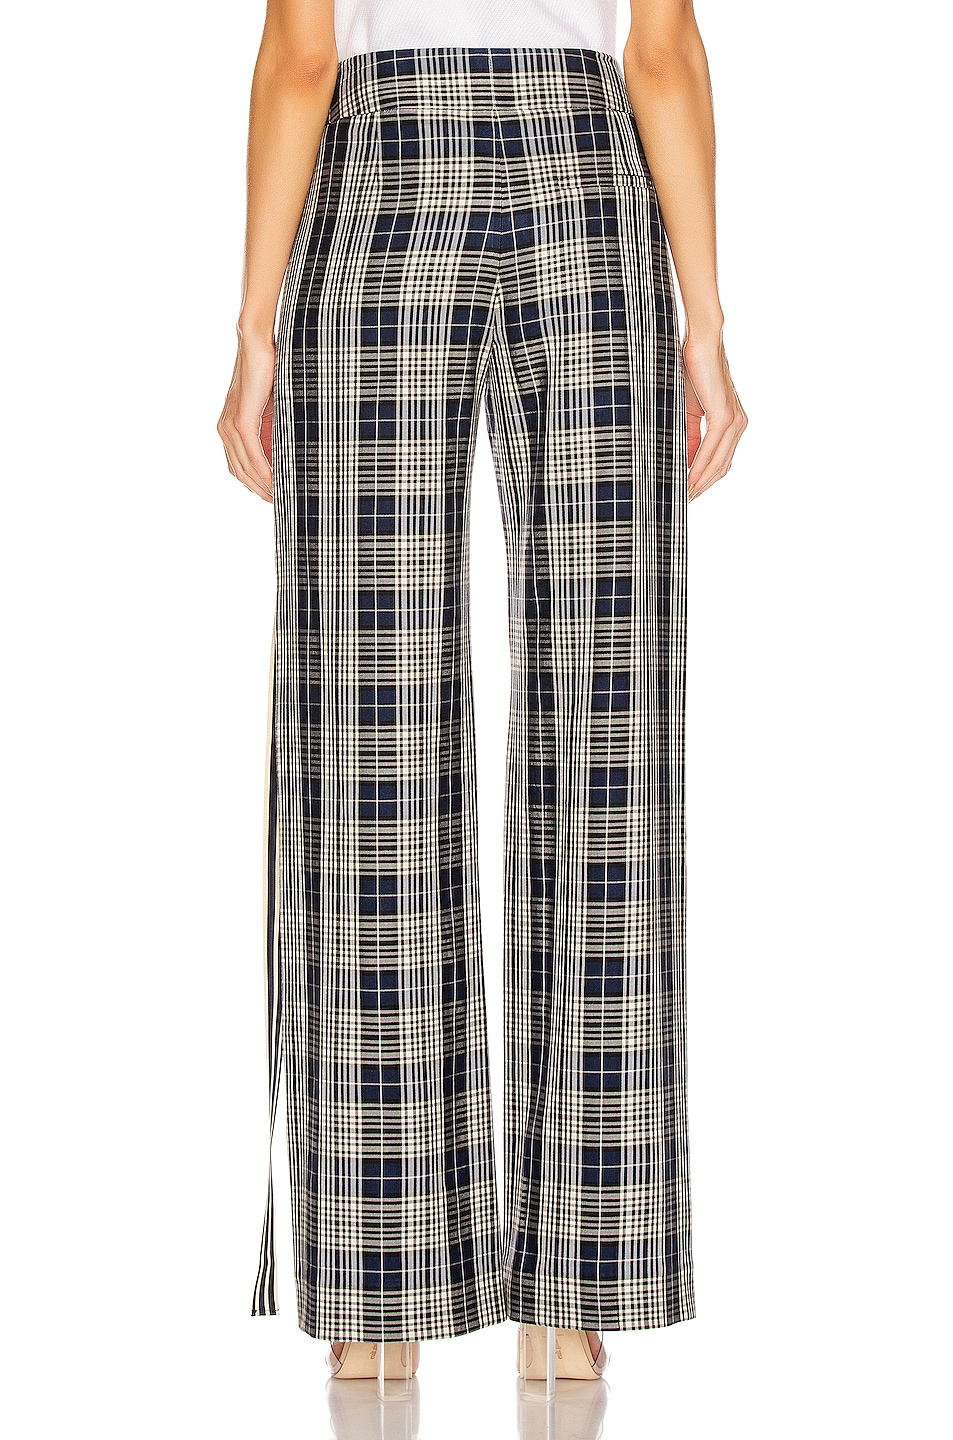 Image 3 of Monse Racing Stripe Vintage Pant in Navy Plaid